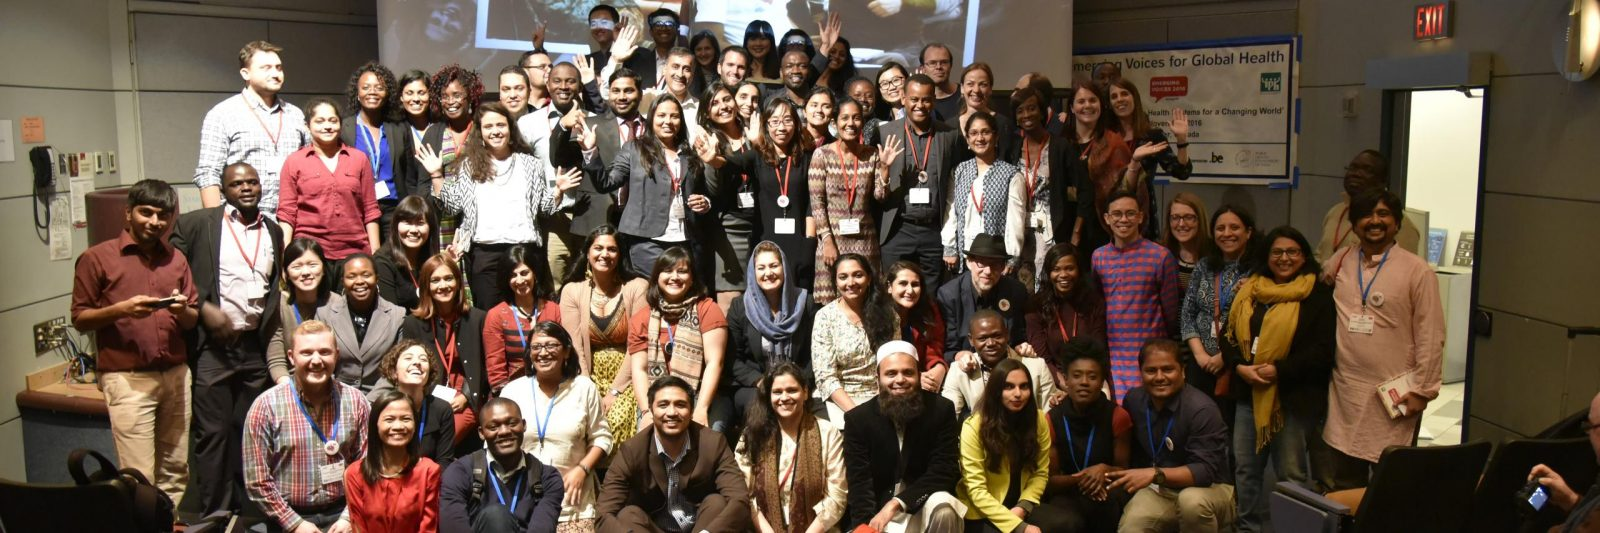 Emerging Voices for Global Health at HSR2016